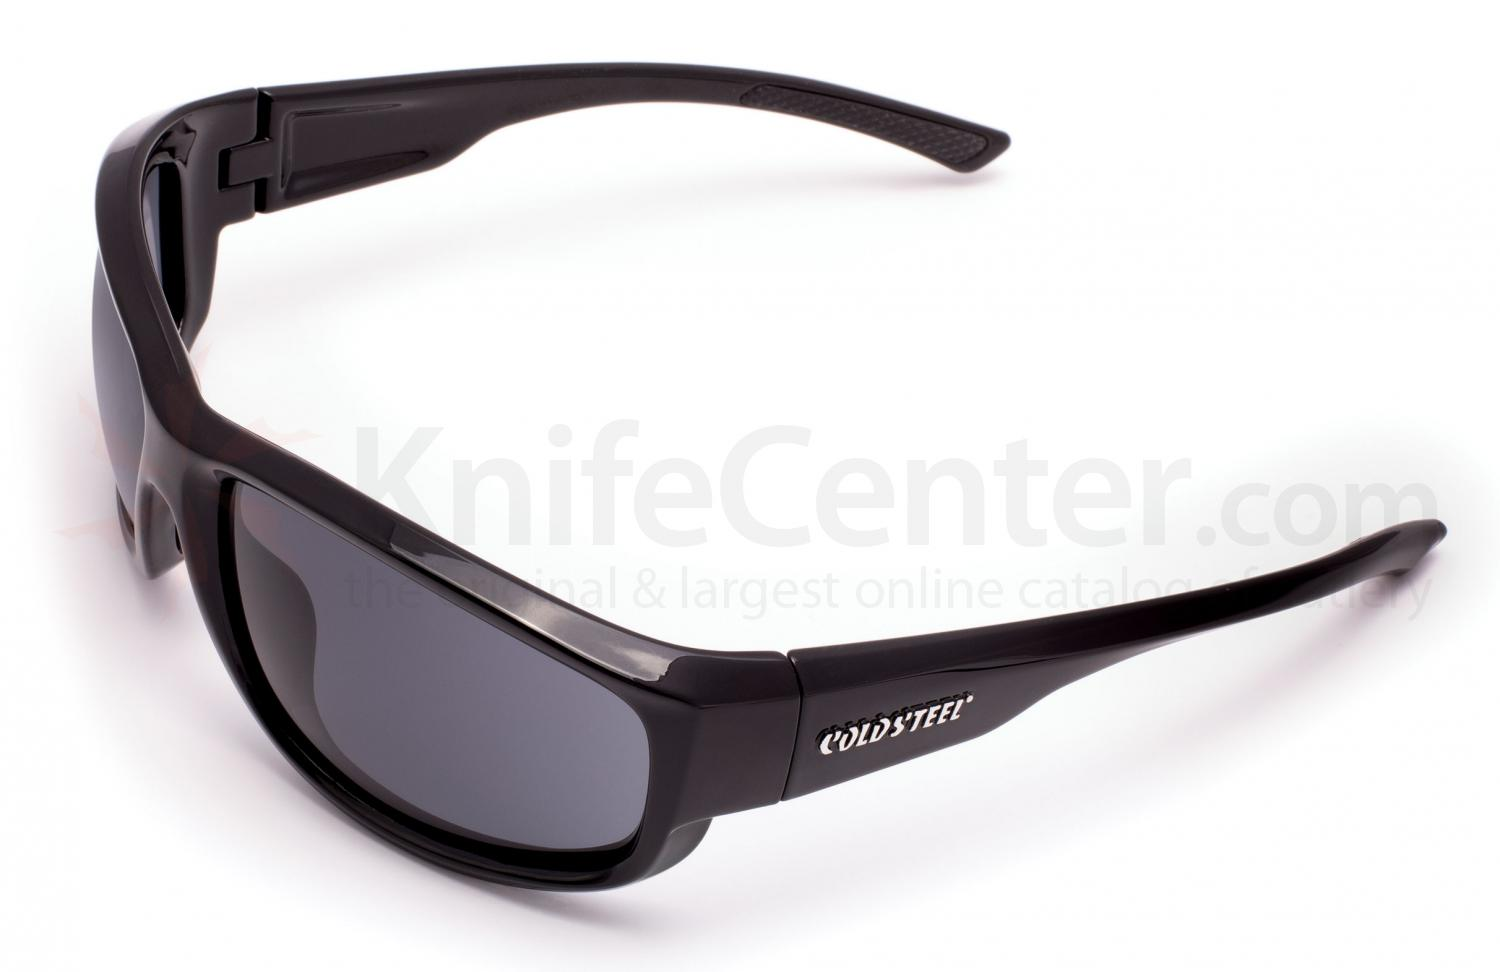 Cold Steel EW21 Battle Shades Mark-II Eyewear, Gloss Black Sunglasses